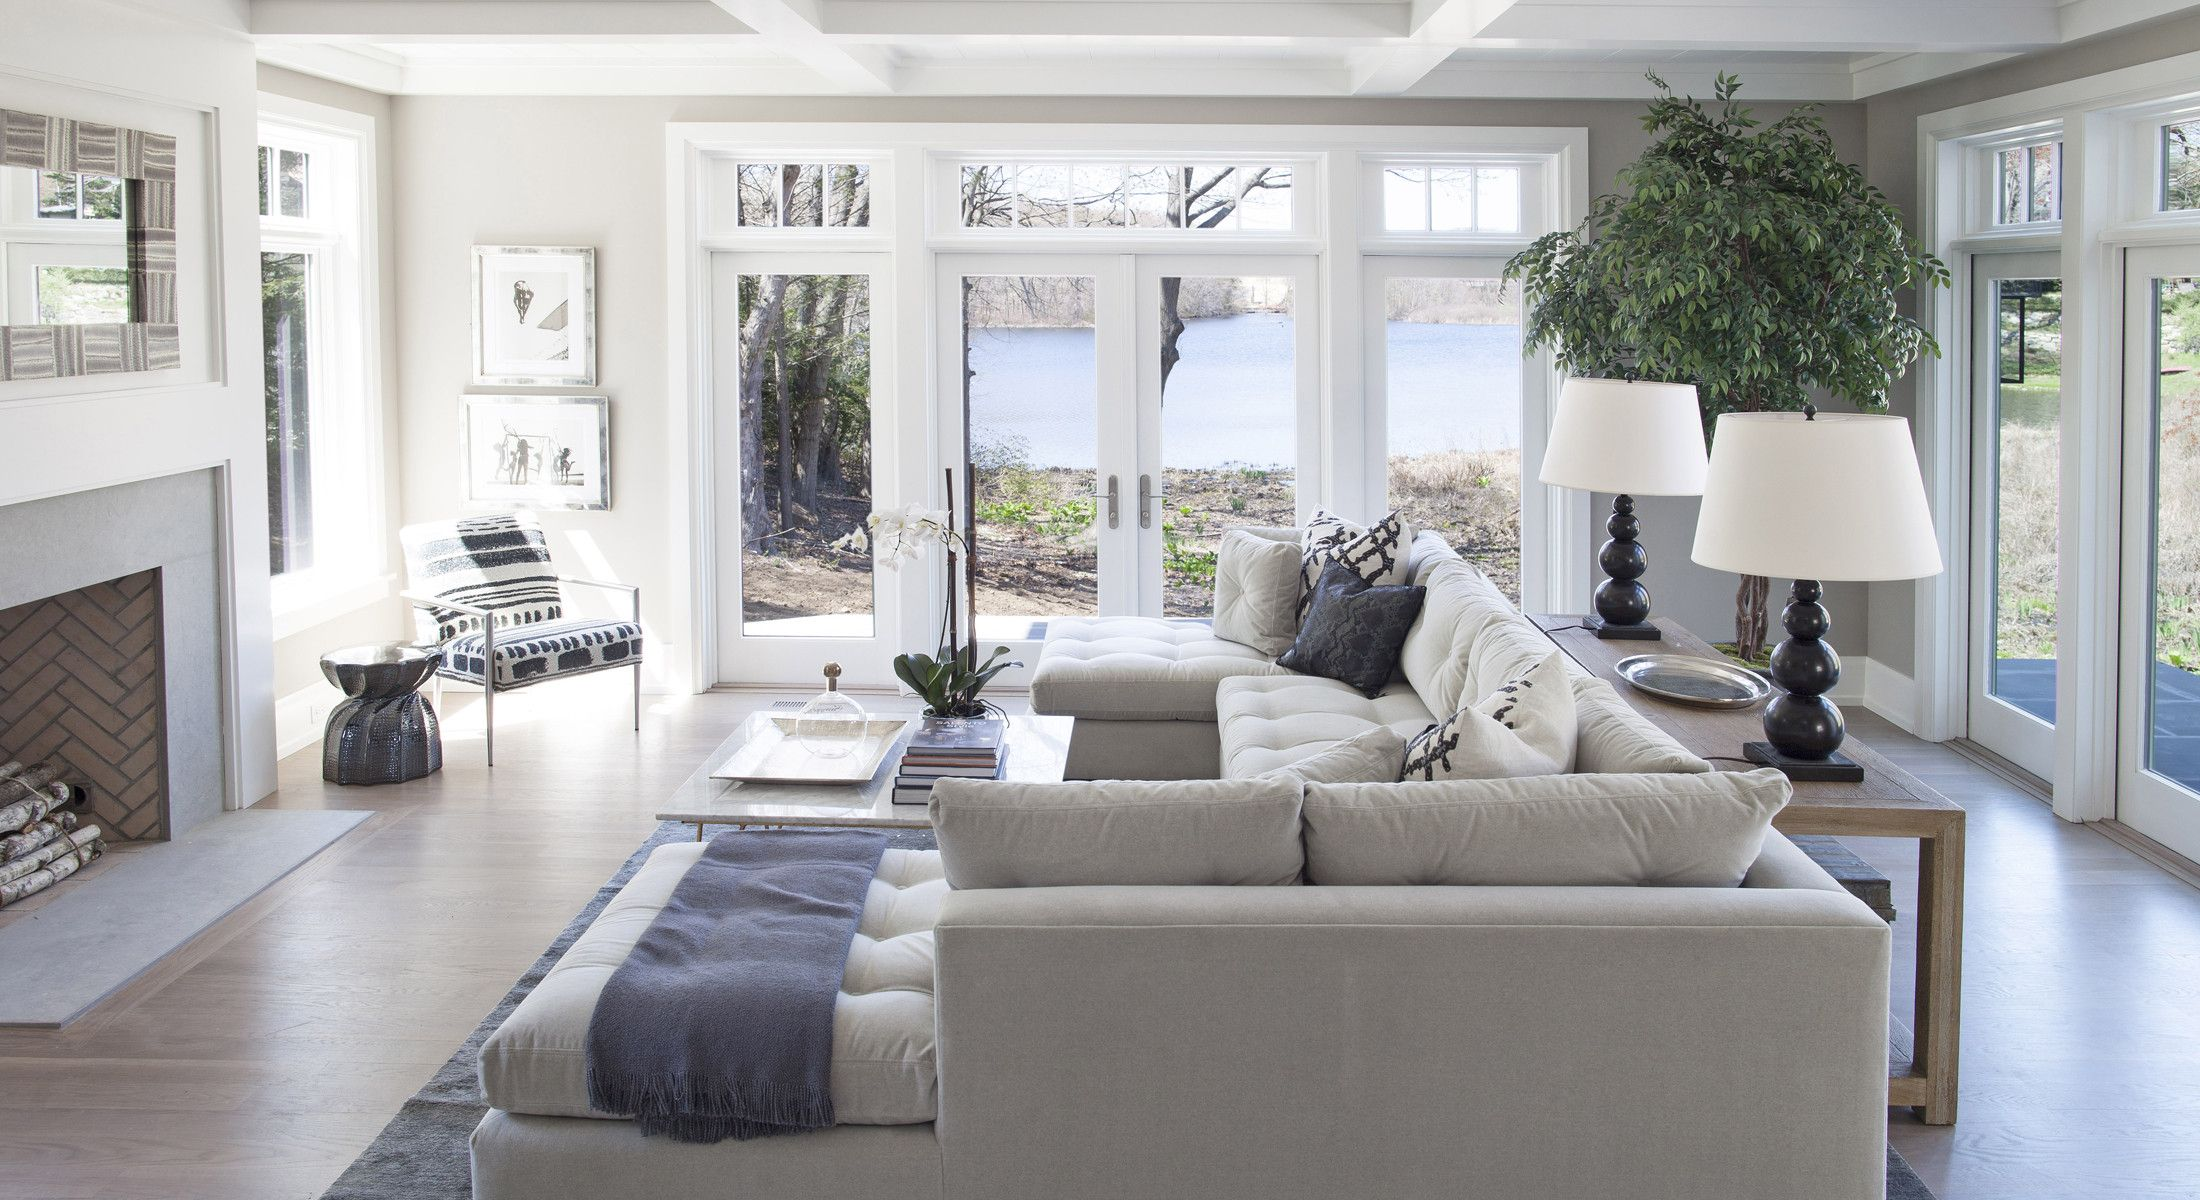 Family Room Seating And Large Painless Windows Set On Either Side